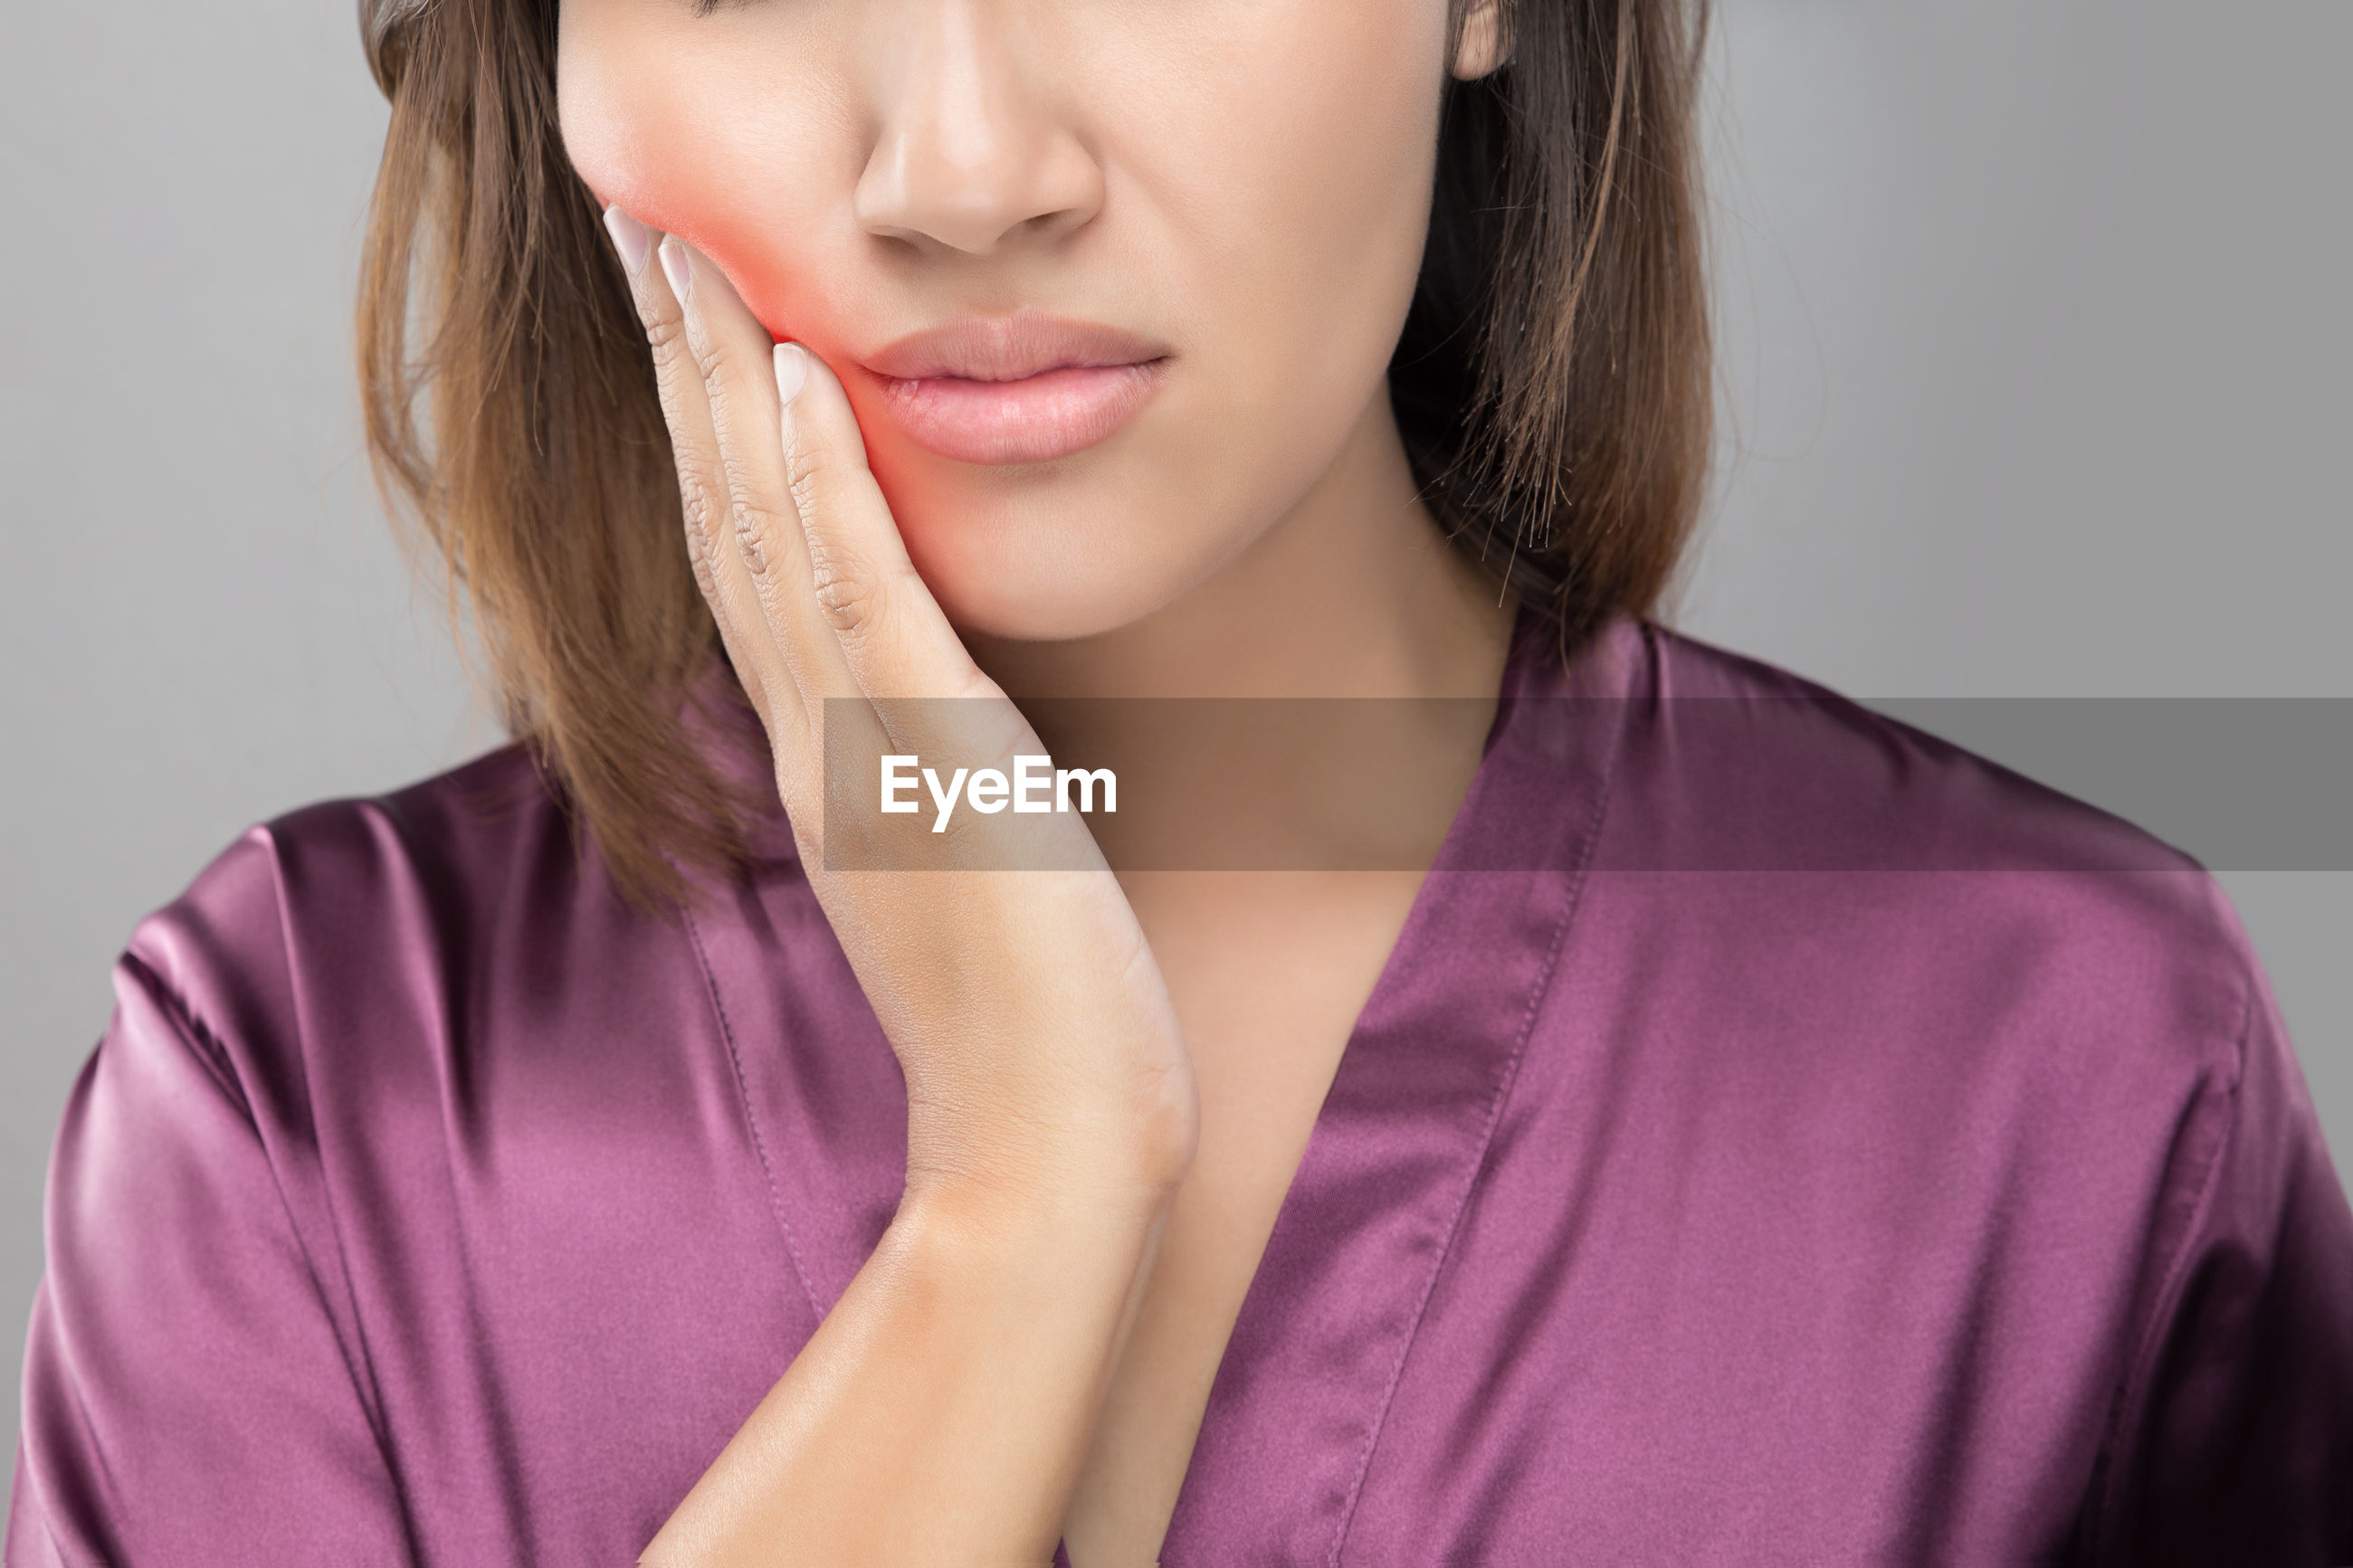 Close-up of woman suffering from toothache against gray background